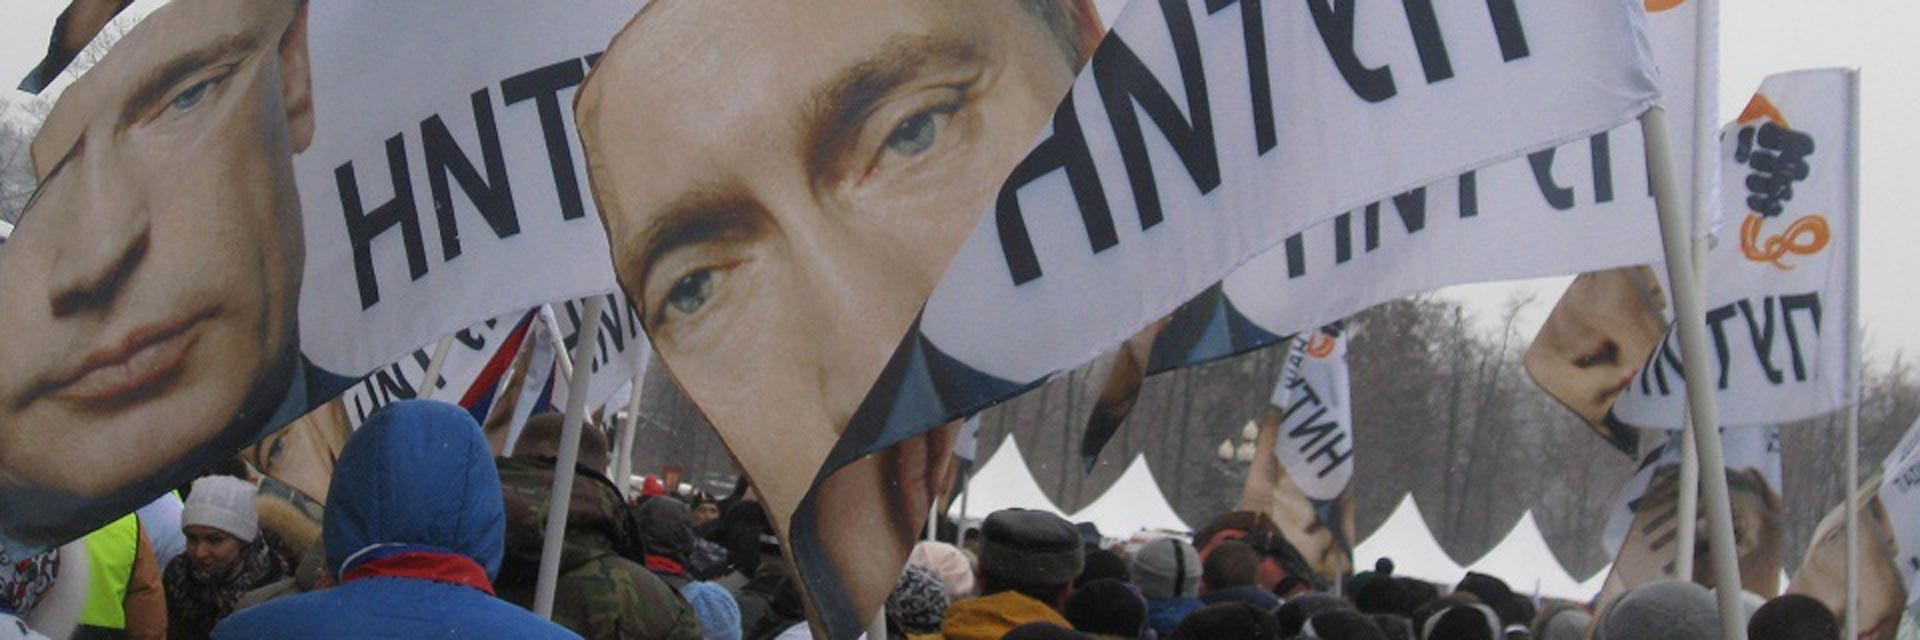 http://www.luciankim.com/wp-content/uploads/2012/05/putin-flag-large-wpcf_1920x640.jpg